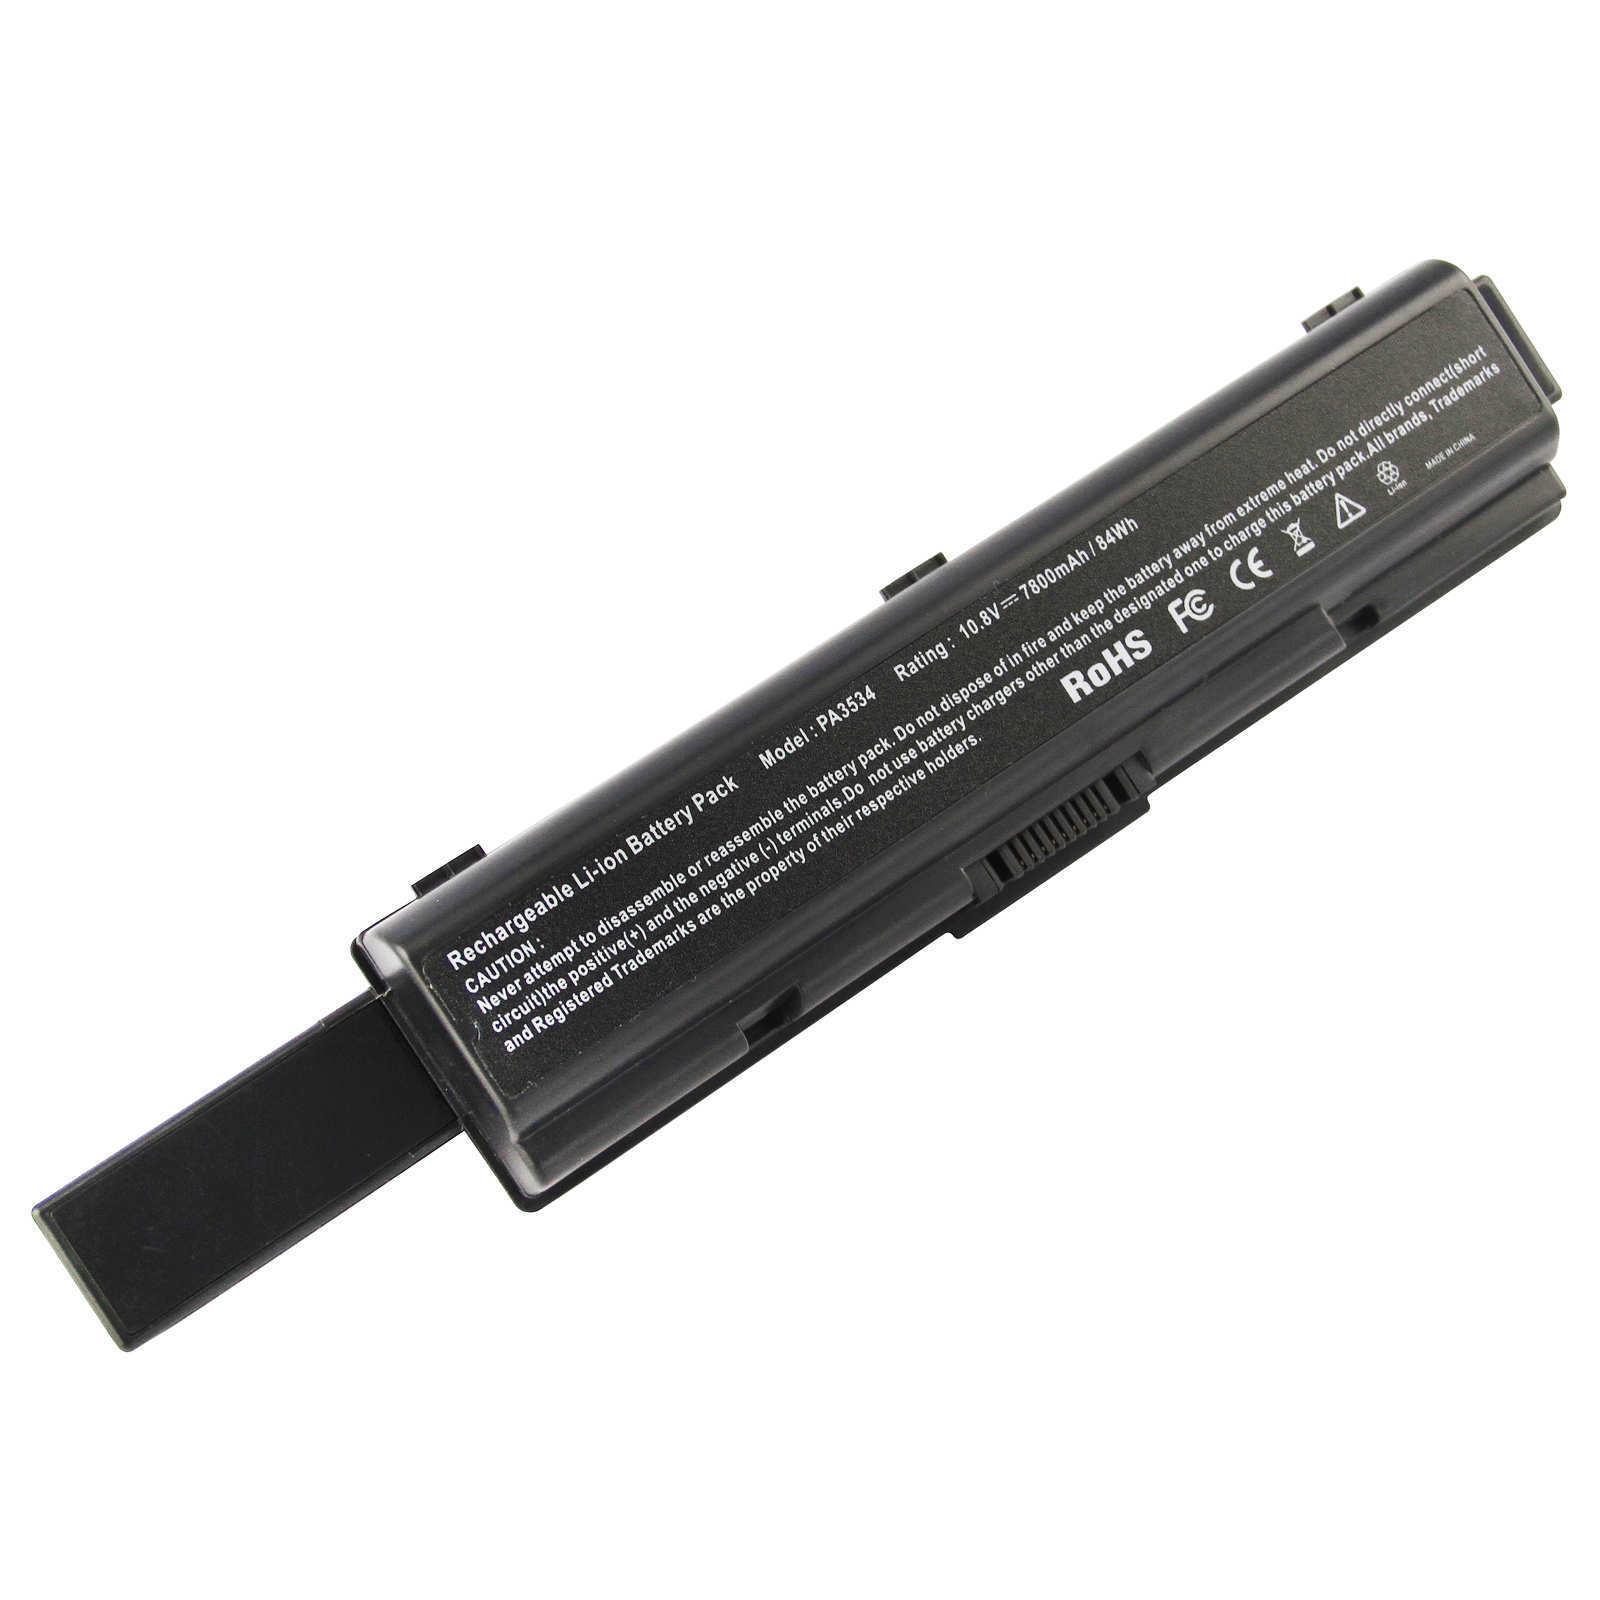 Replacement Toshiba Satellite A305-S6853 Battery